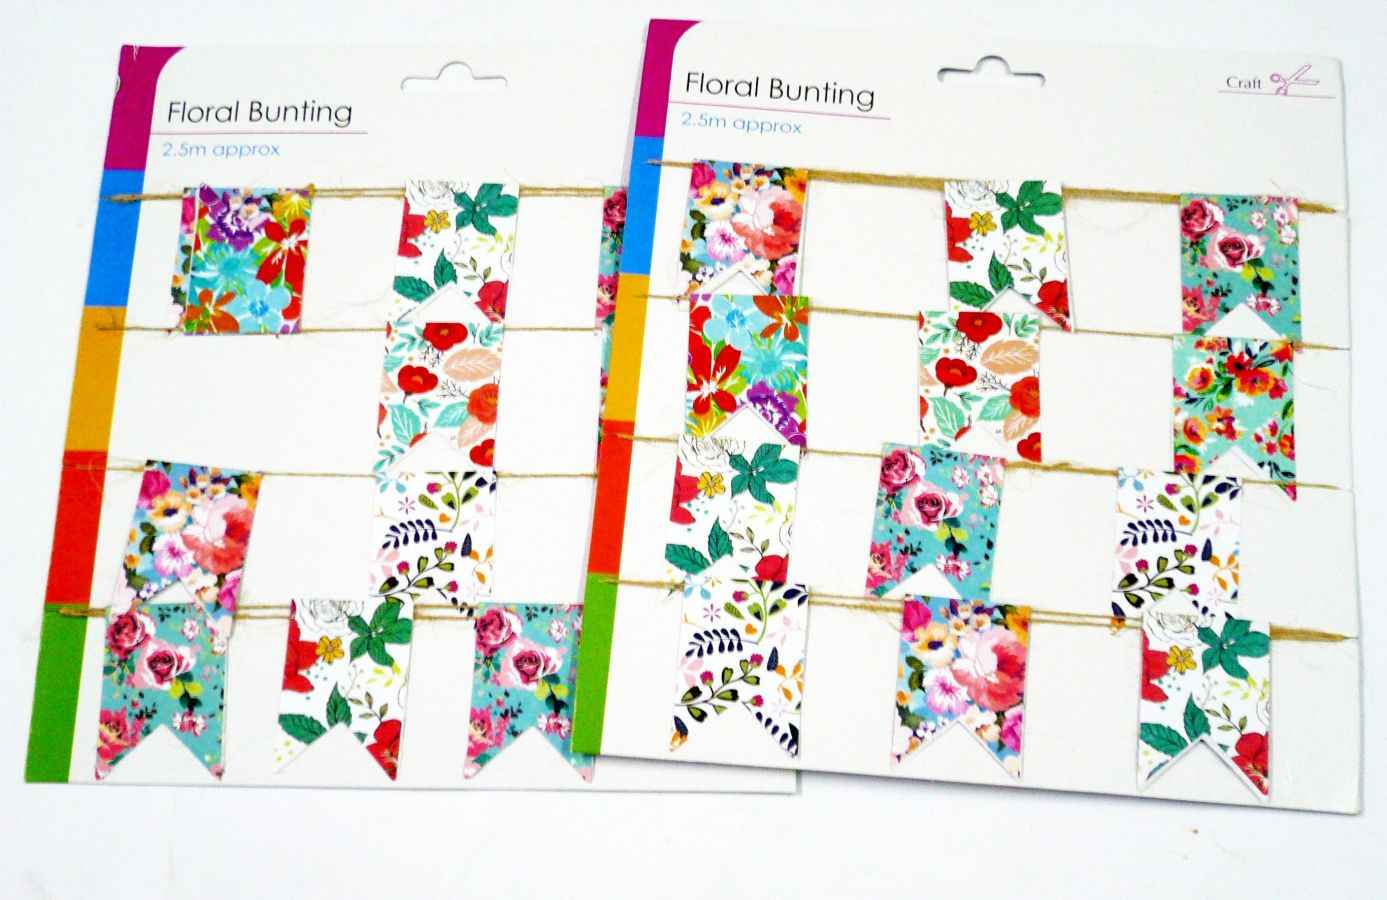 2.5m floral bunting*